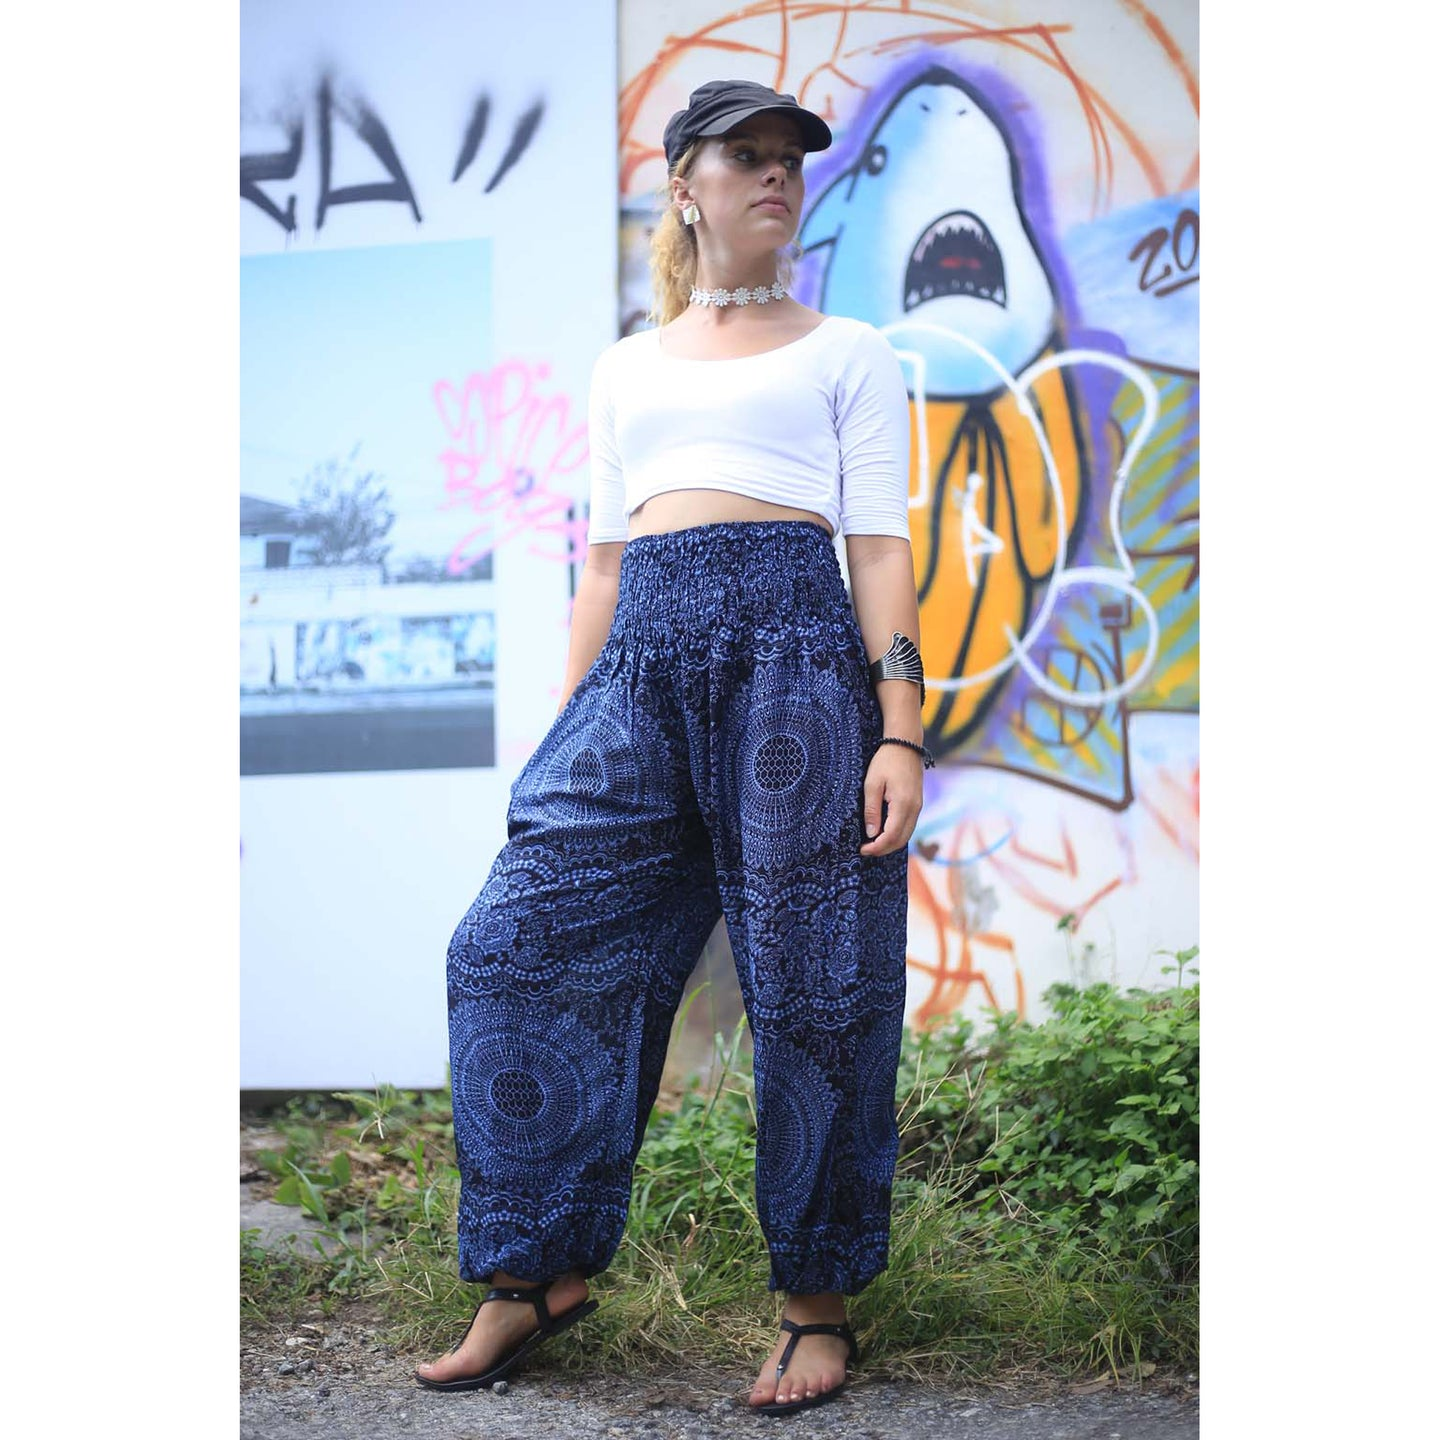 Monotone Mandala 31 women harem pants in Navy PP0004 020031 02